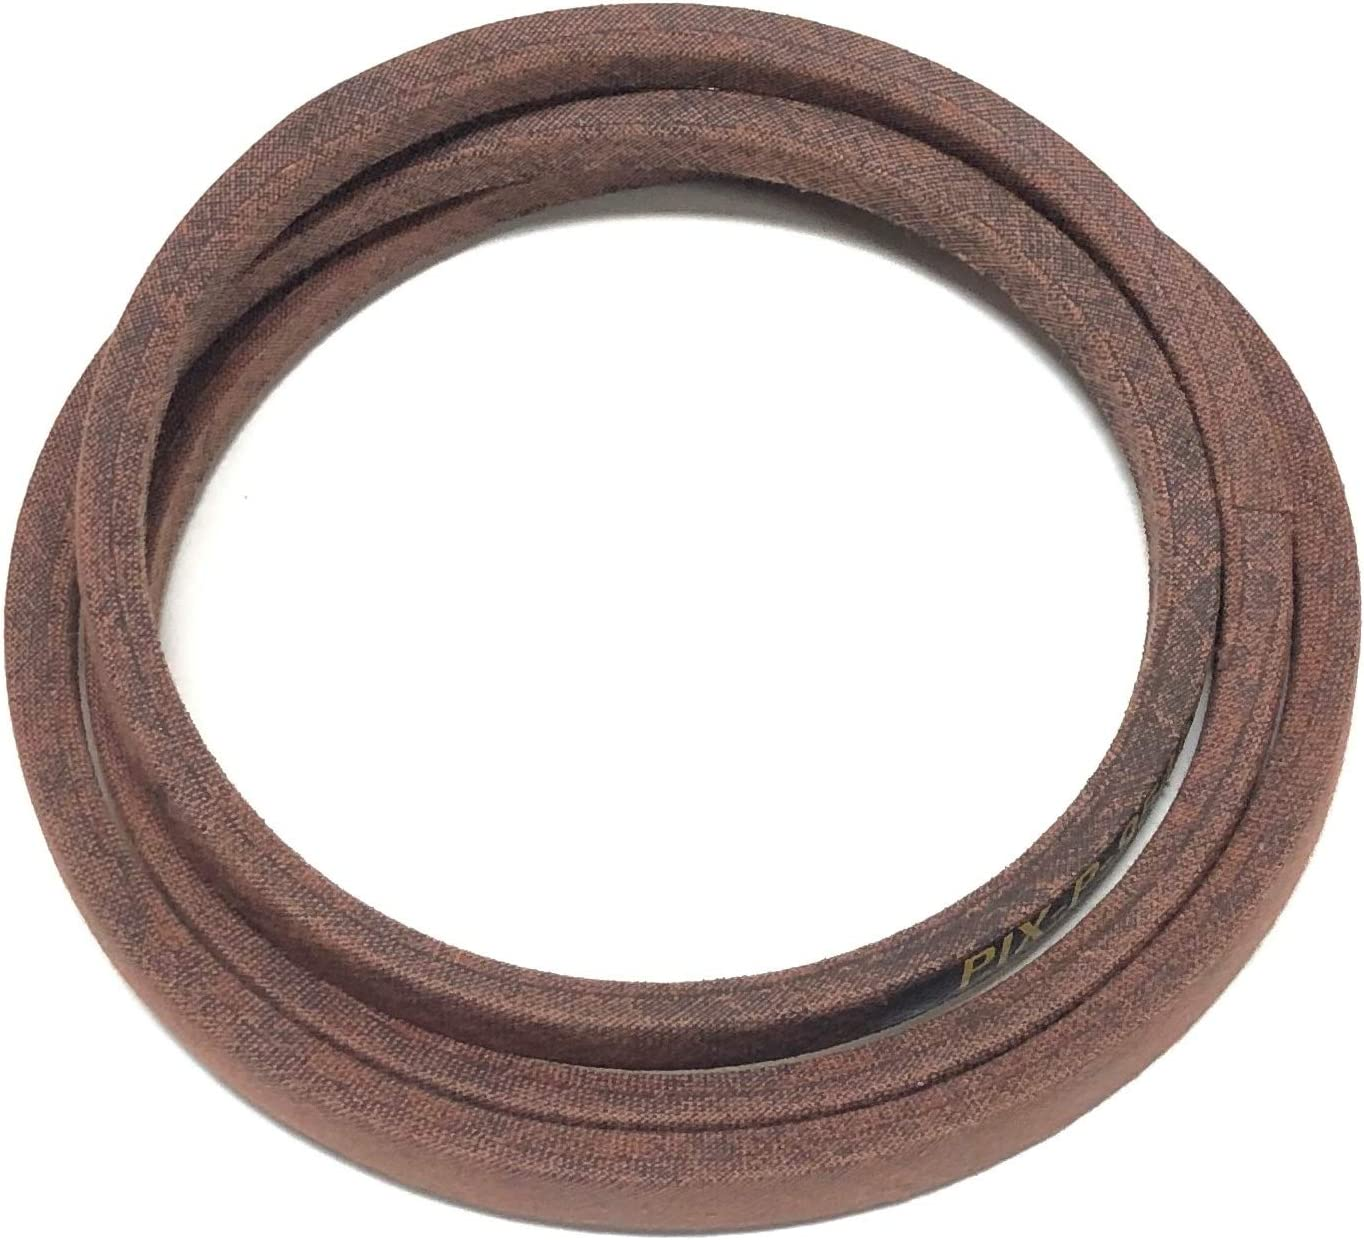 954-0641 Replacement Belt for Cub Cadet 754-0641